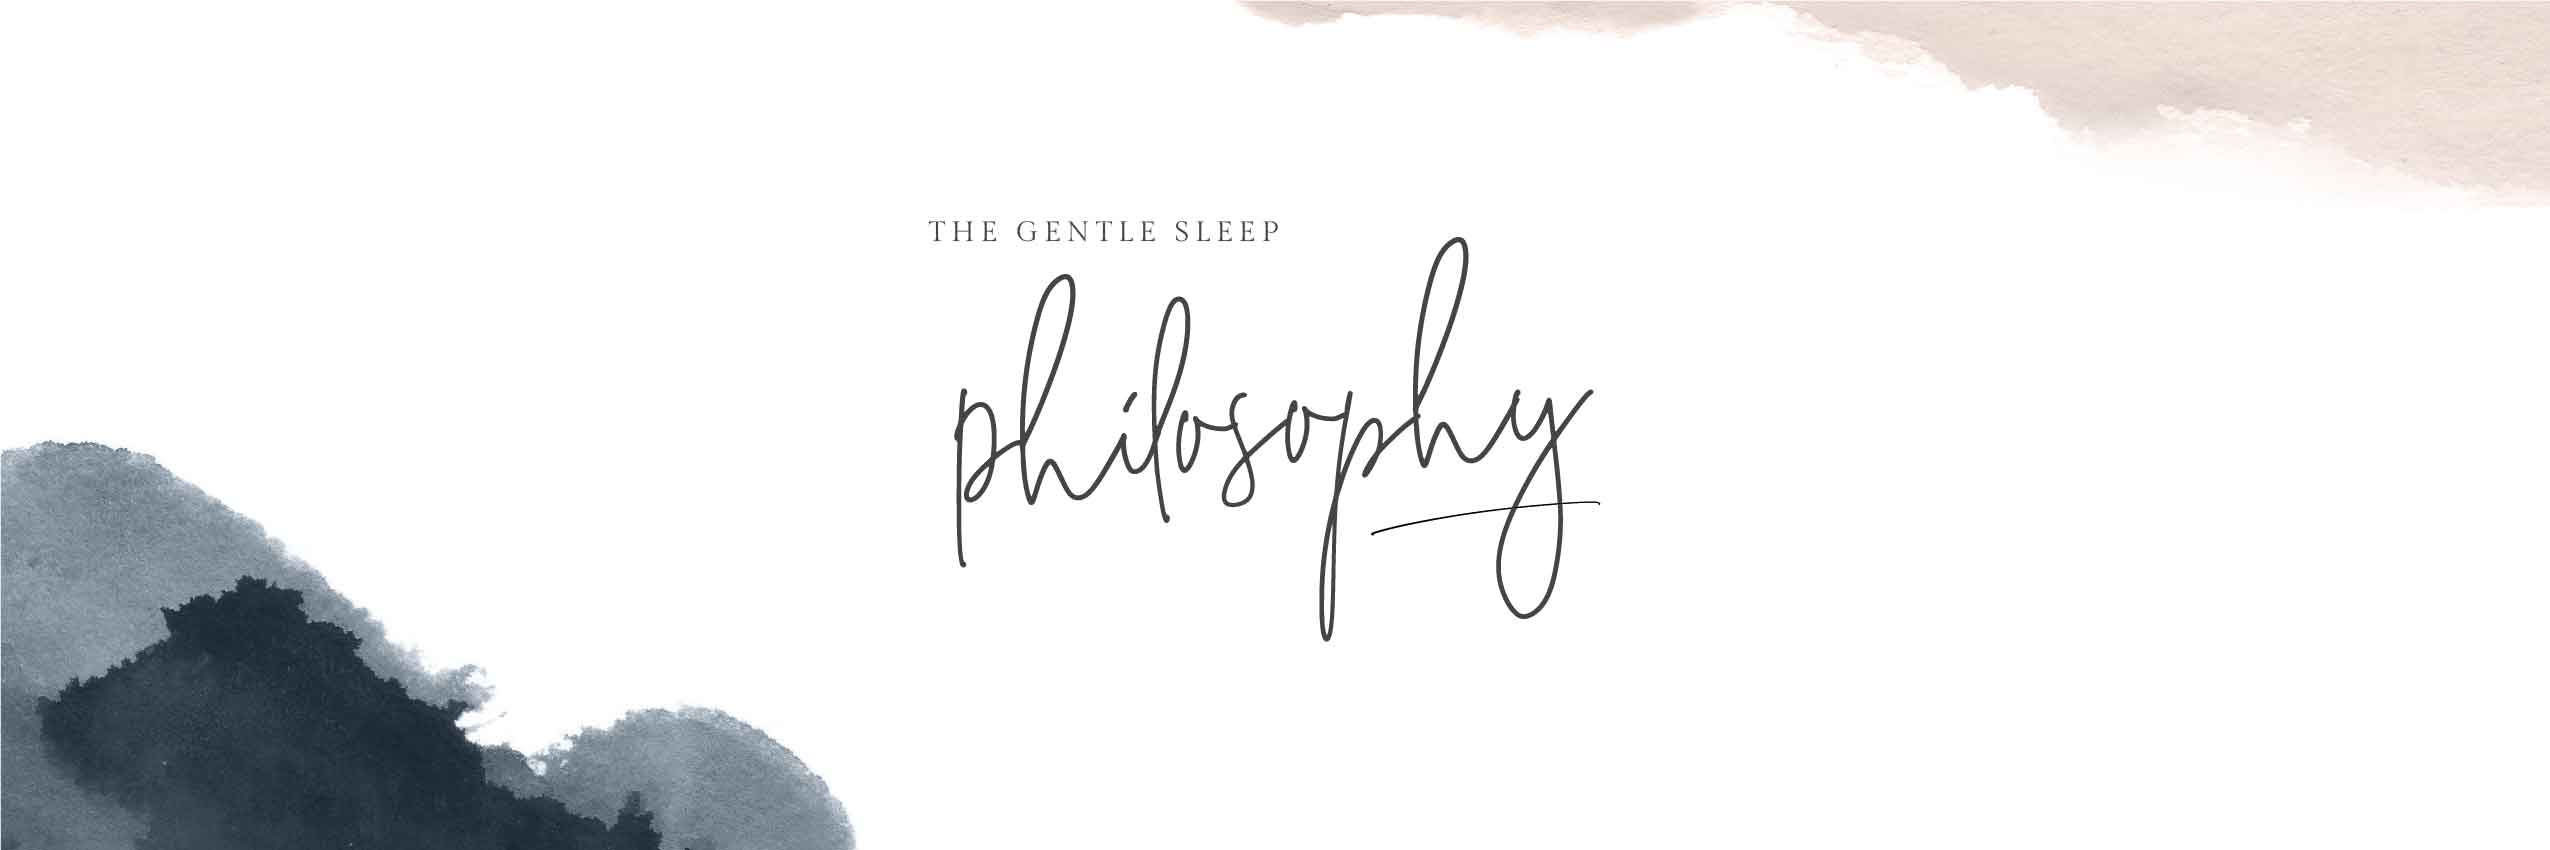 tgss-philiosophy Baby Sleep Philosophy